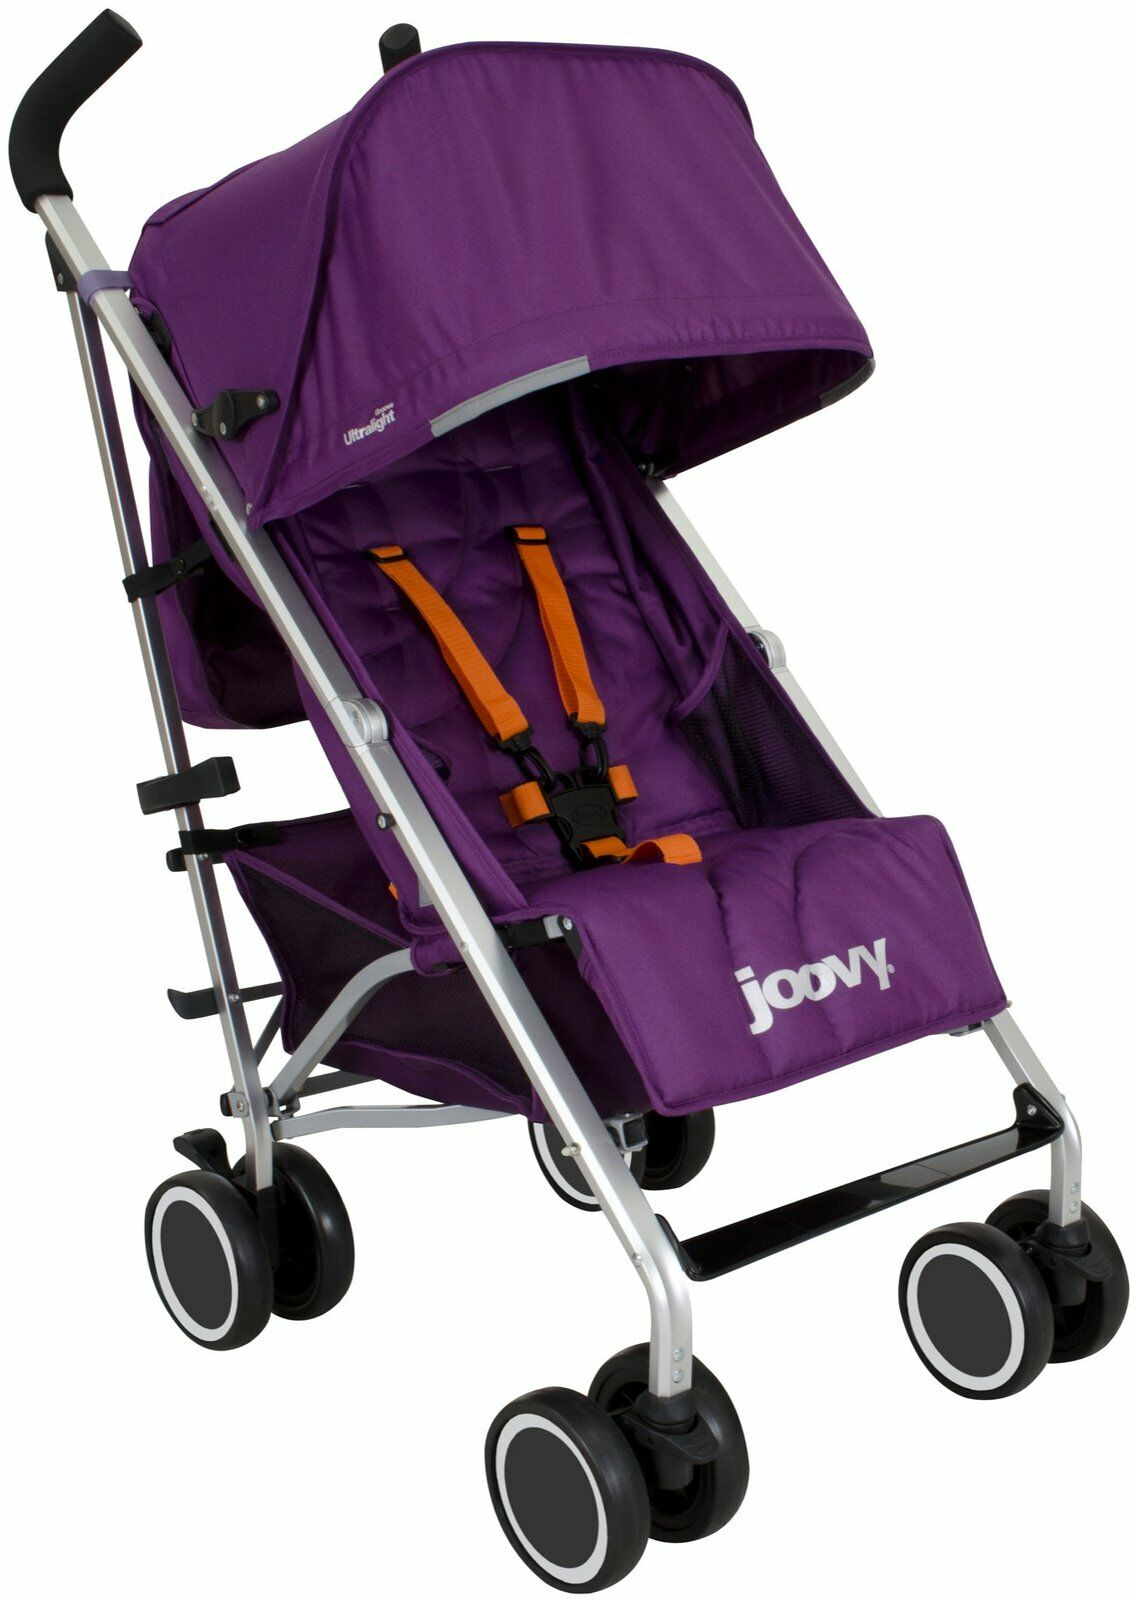 How to Buy a Used Joovy Baby Stroller | eBay